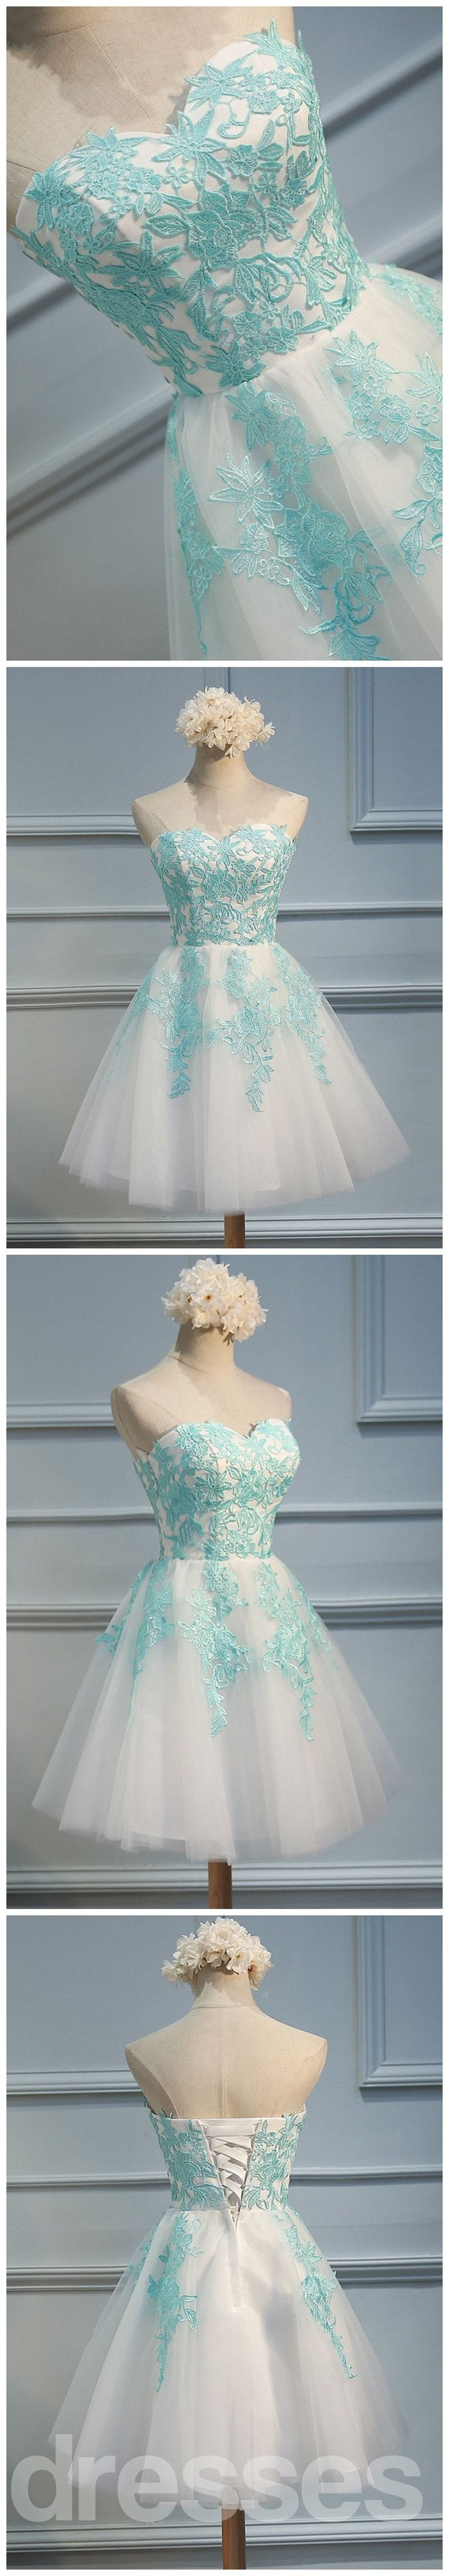 Strapless Sweetheart Tiffany Blue Lace Tulle Homecoming Prom Dresses ...